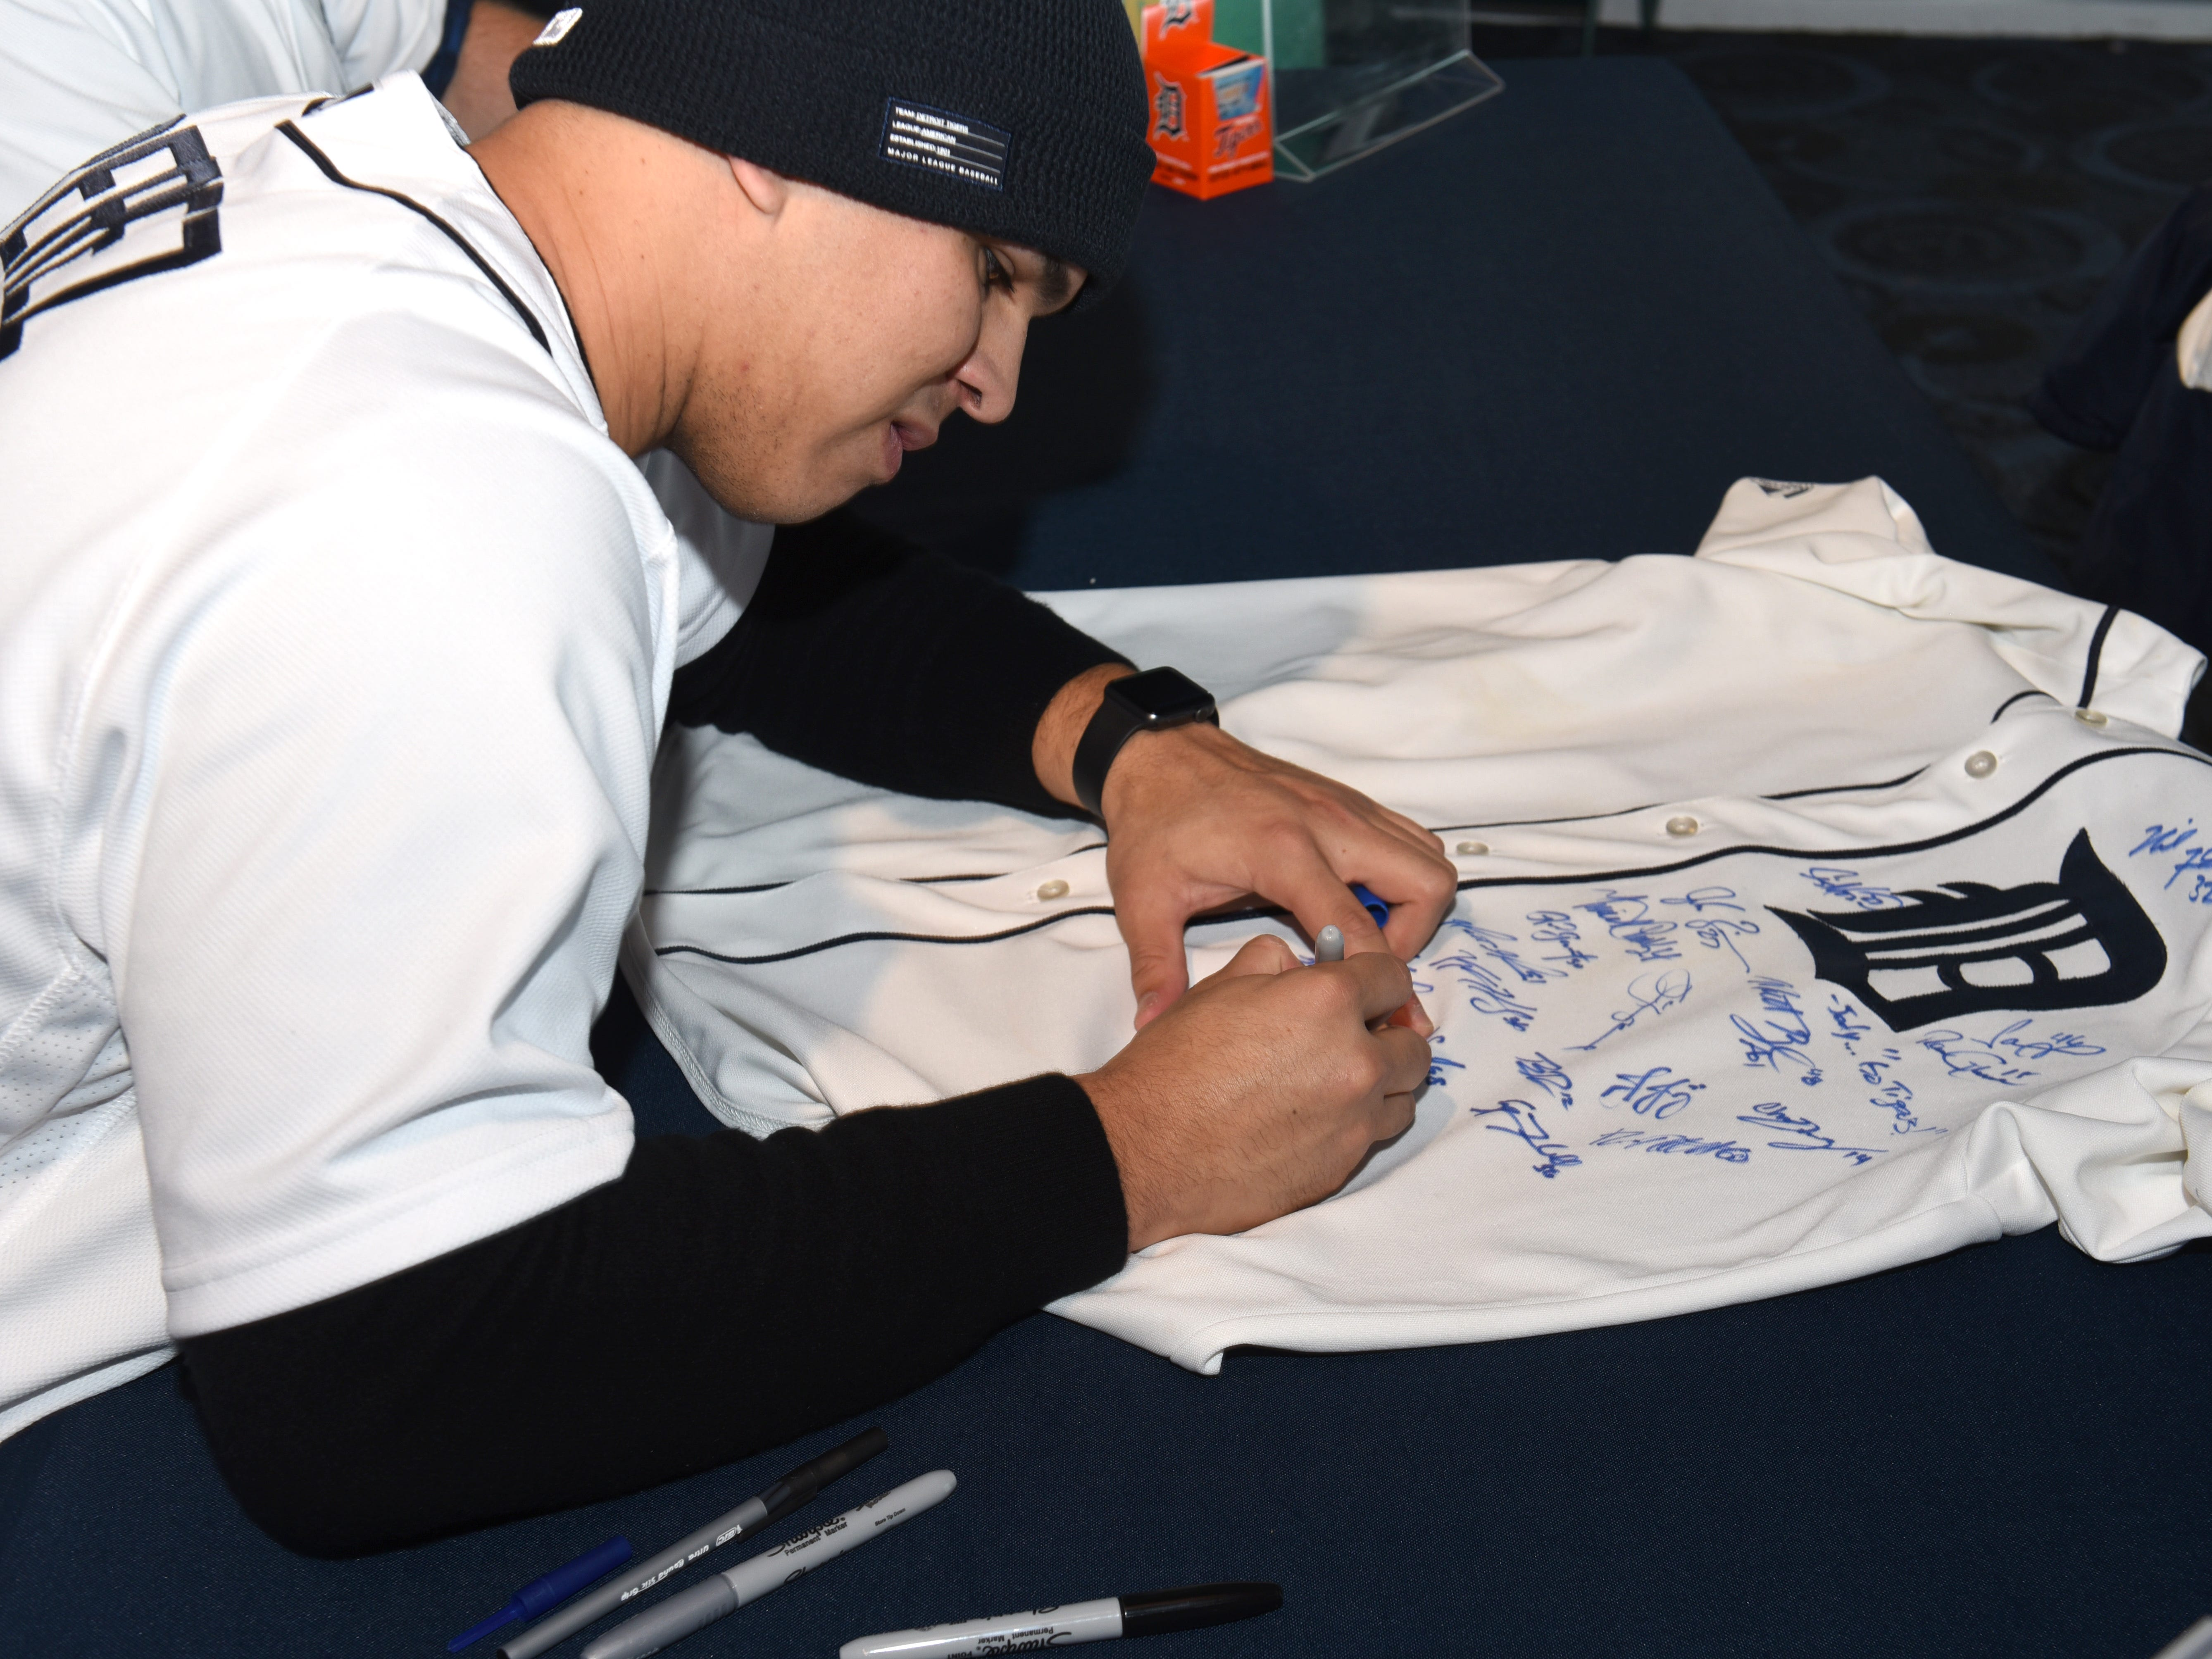 Detroit Tigers pitcher Franklin Perez signs a fan's jersey during TigerFest 2019 at Comerica Park.